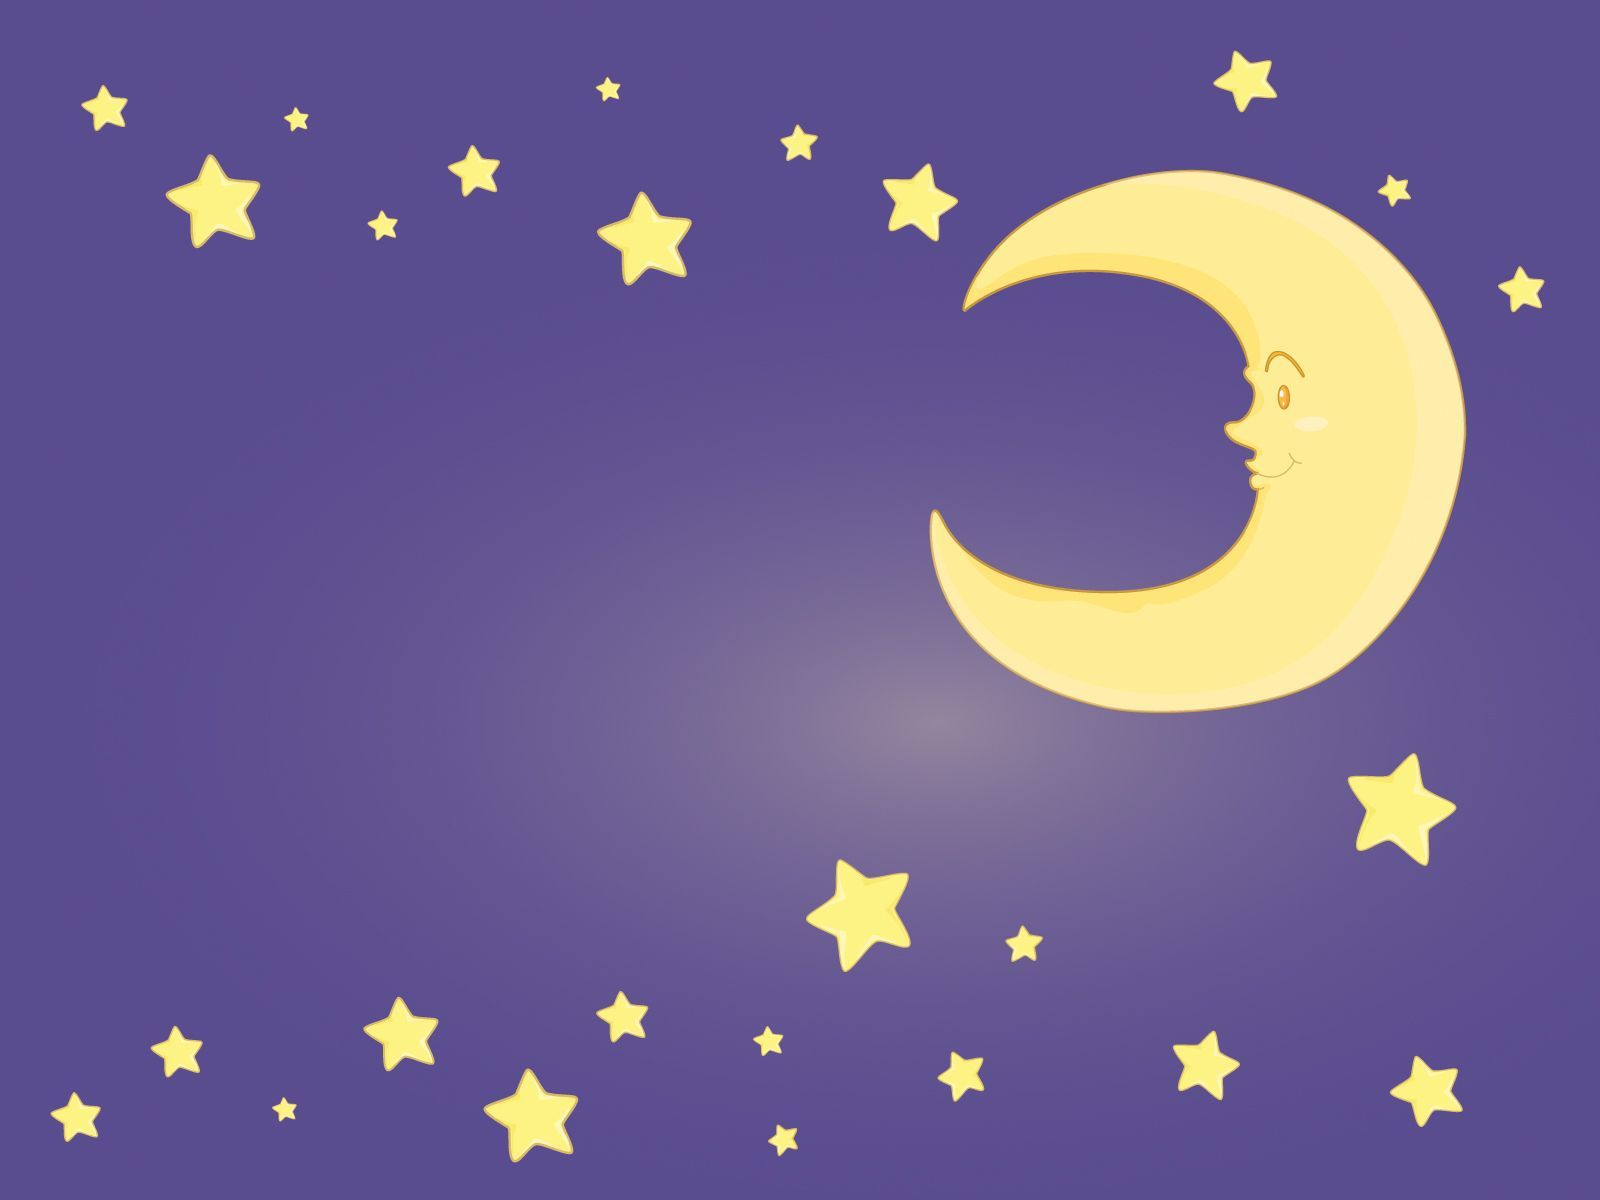 Moon And Stars Backgrounds.